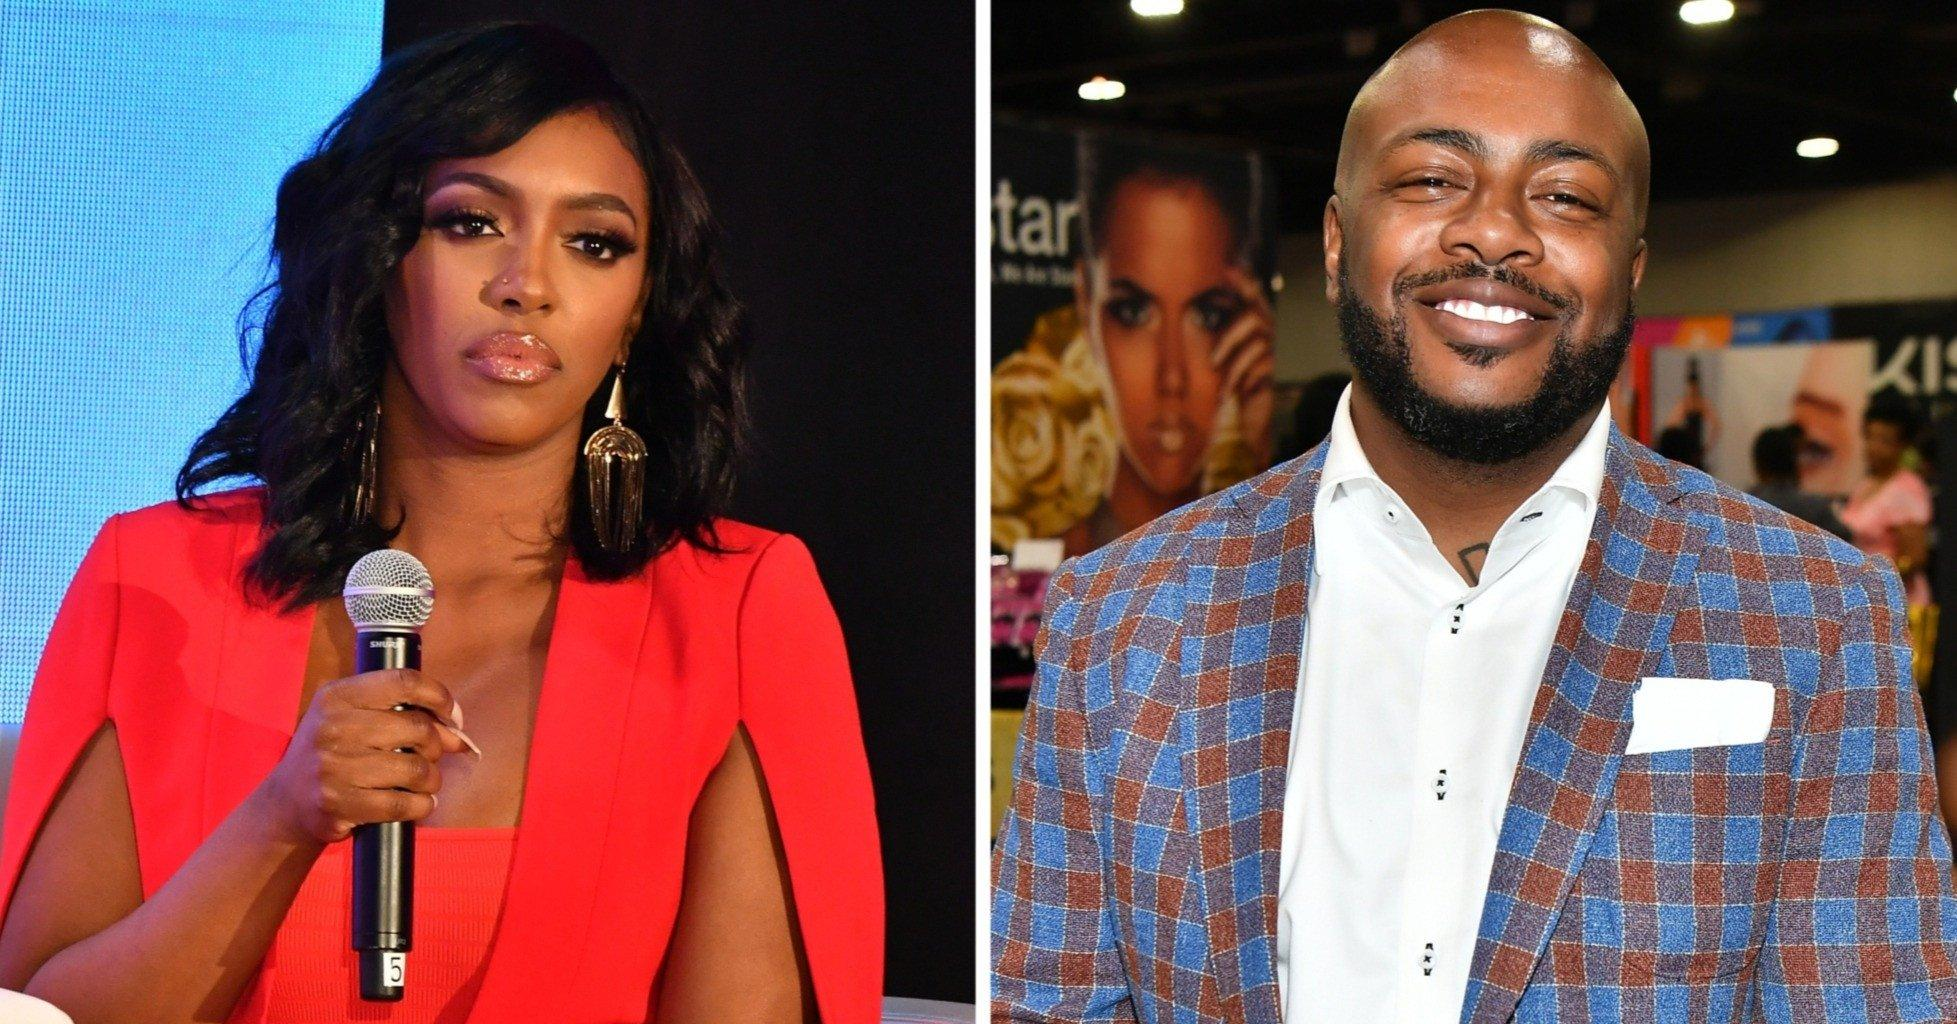 Porsha Williams And Dennis McKinley Looking Forward To Being Happy Together In The New Year After A Terrible 2019